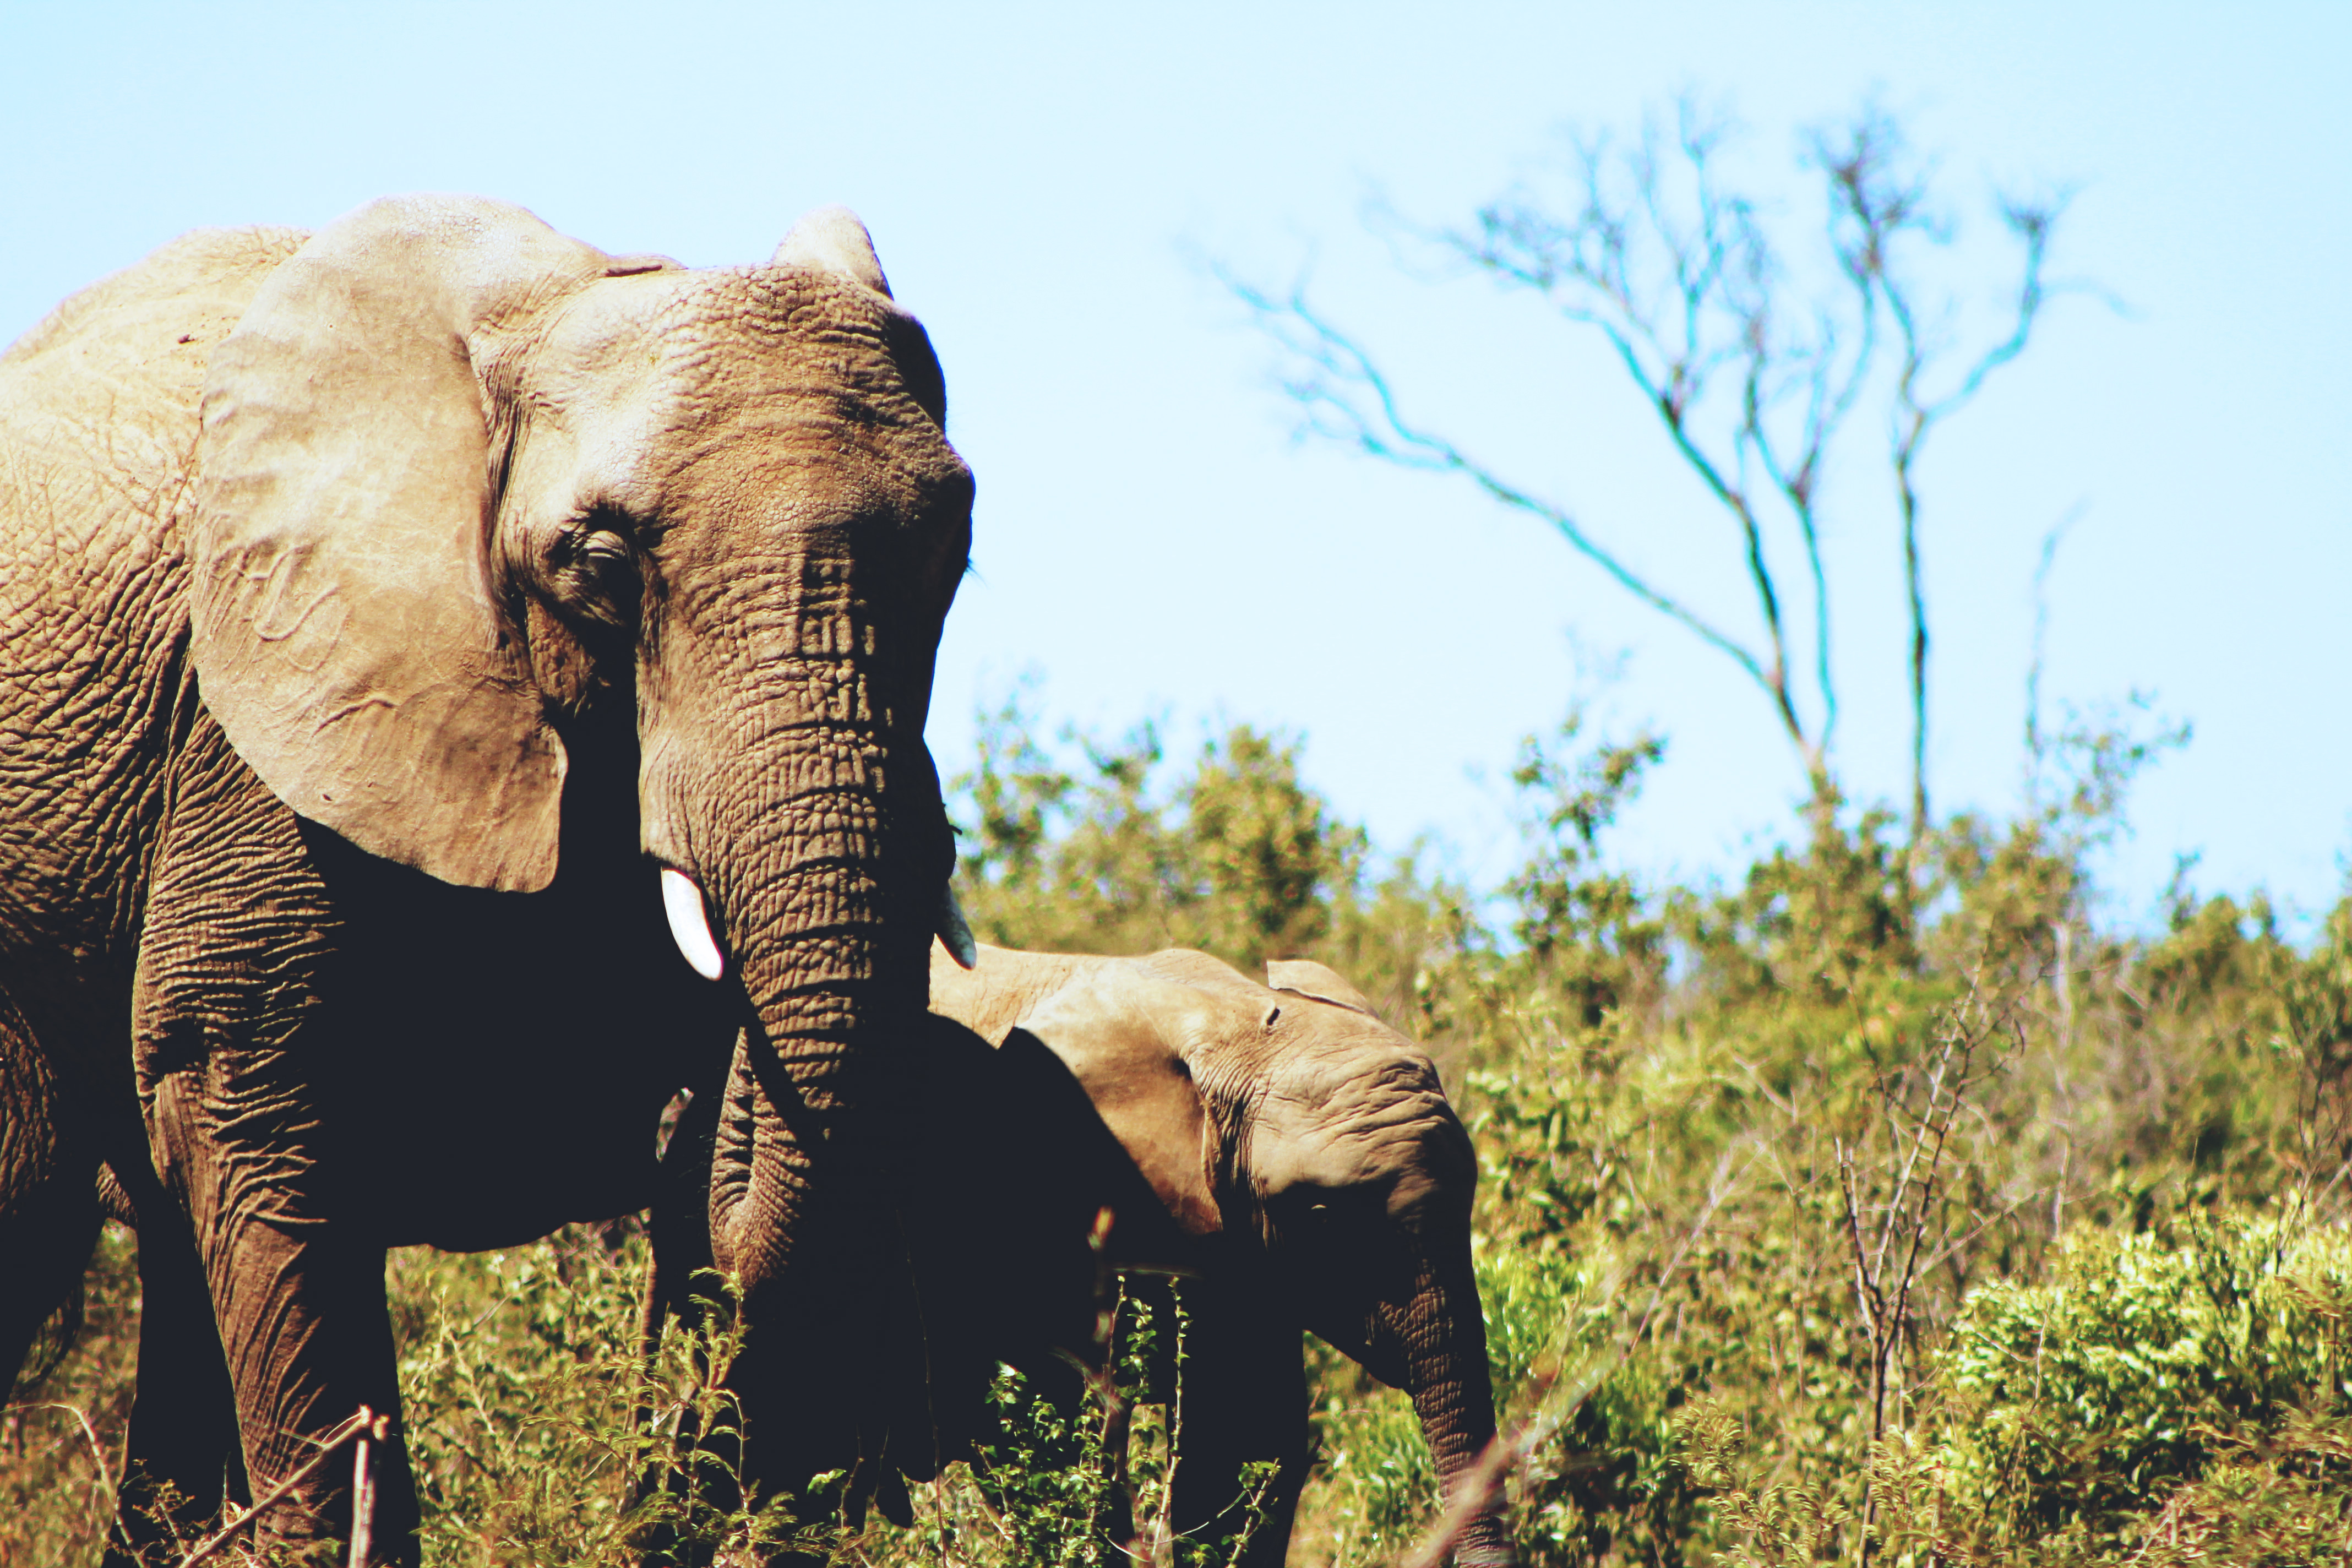 The ivory trade isn't just a disaster for elephants. It threatens our future too